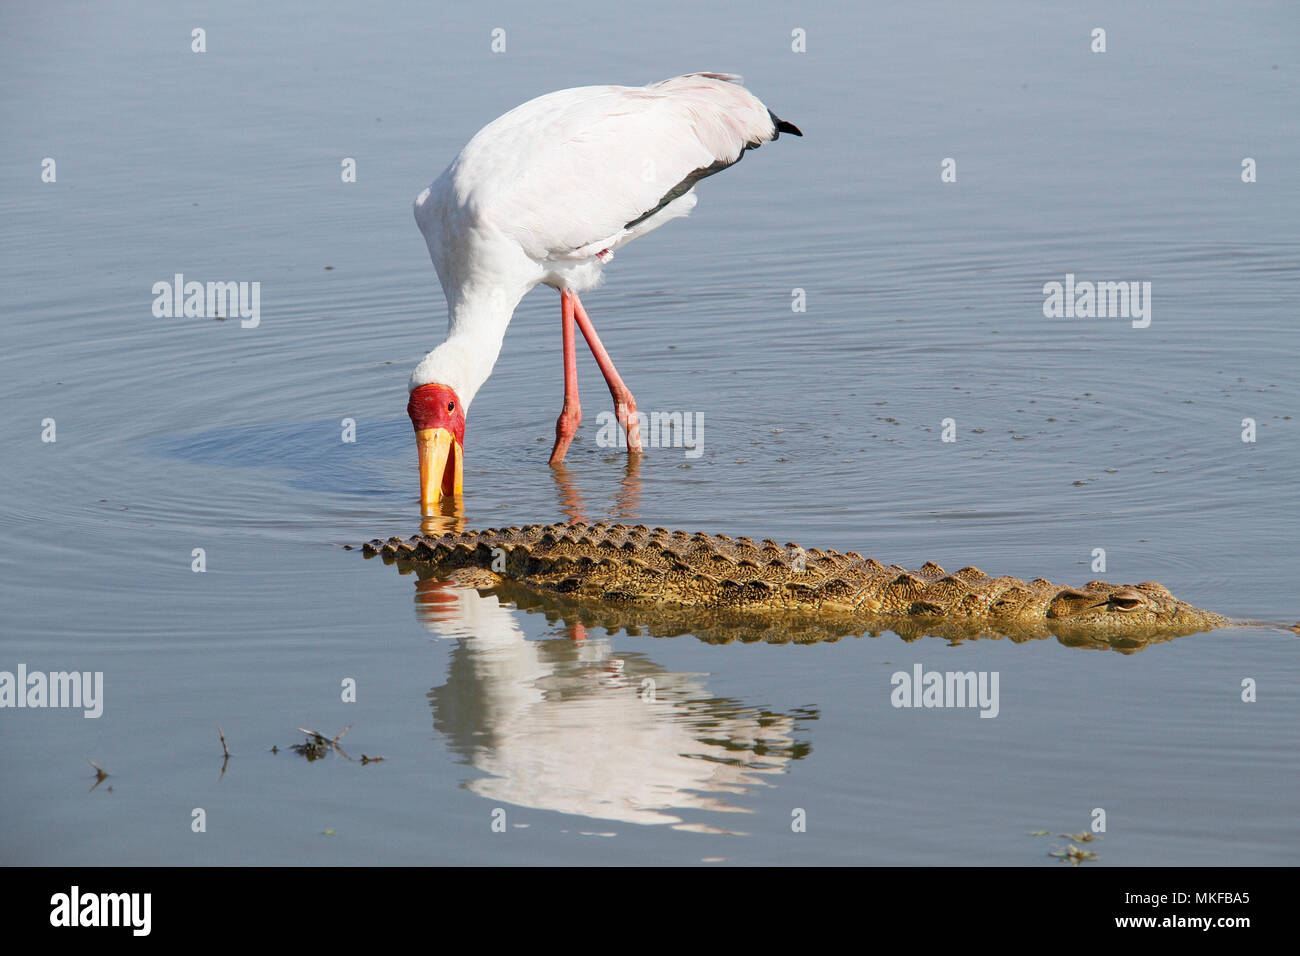 Yellow-billed Stork (Mycteria ibis) and Nile crocodile (Crocodylus niloticus) in water, Kruger NP, South Africa - Stock Image